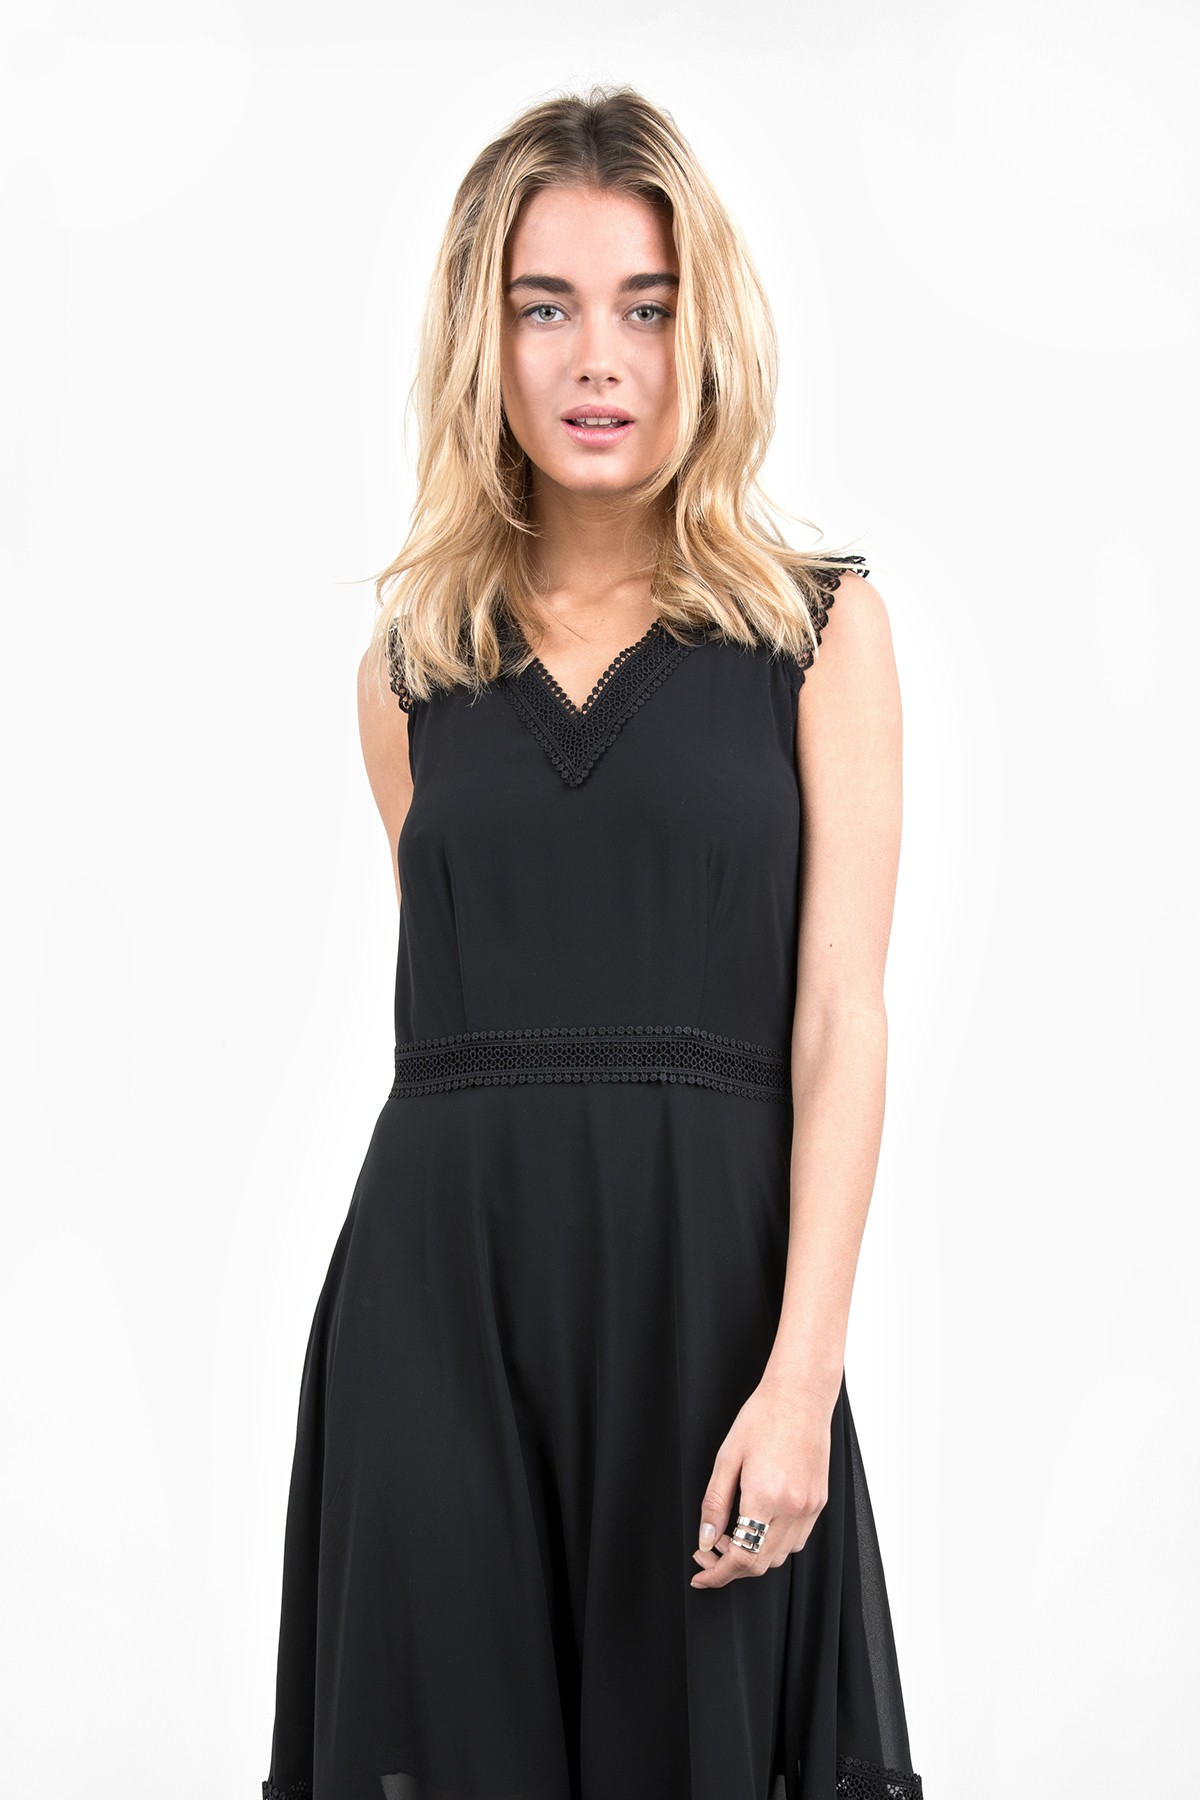 Clearance Cheapest Wholesale Cocktaildress Romina black Tigha How Much Online Free Shipping Get Authentic ZudEWIdKec